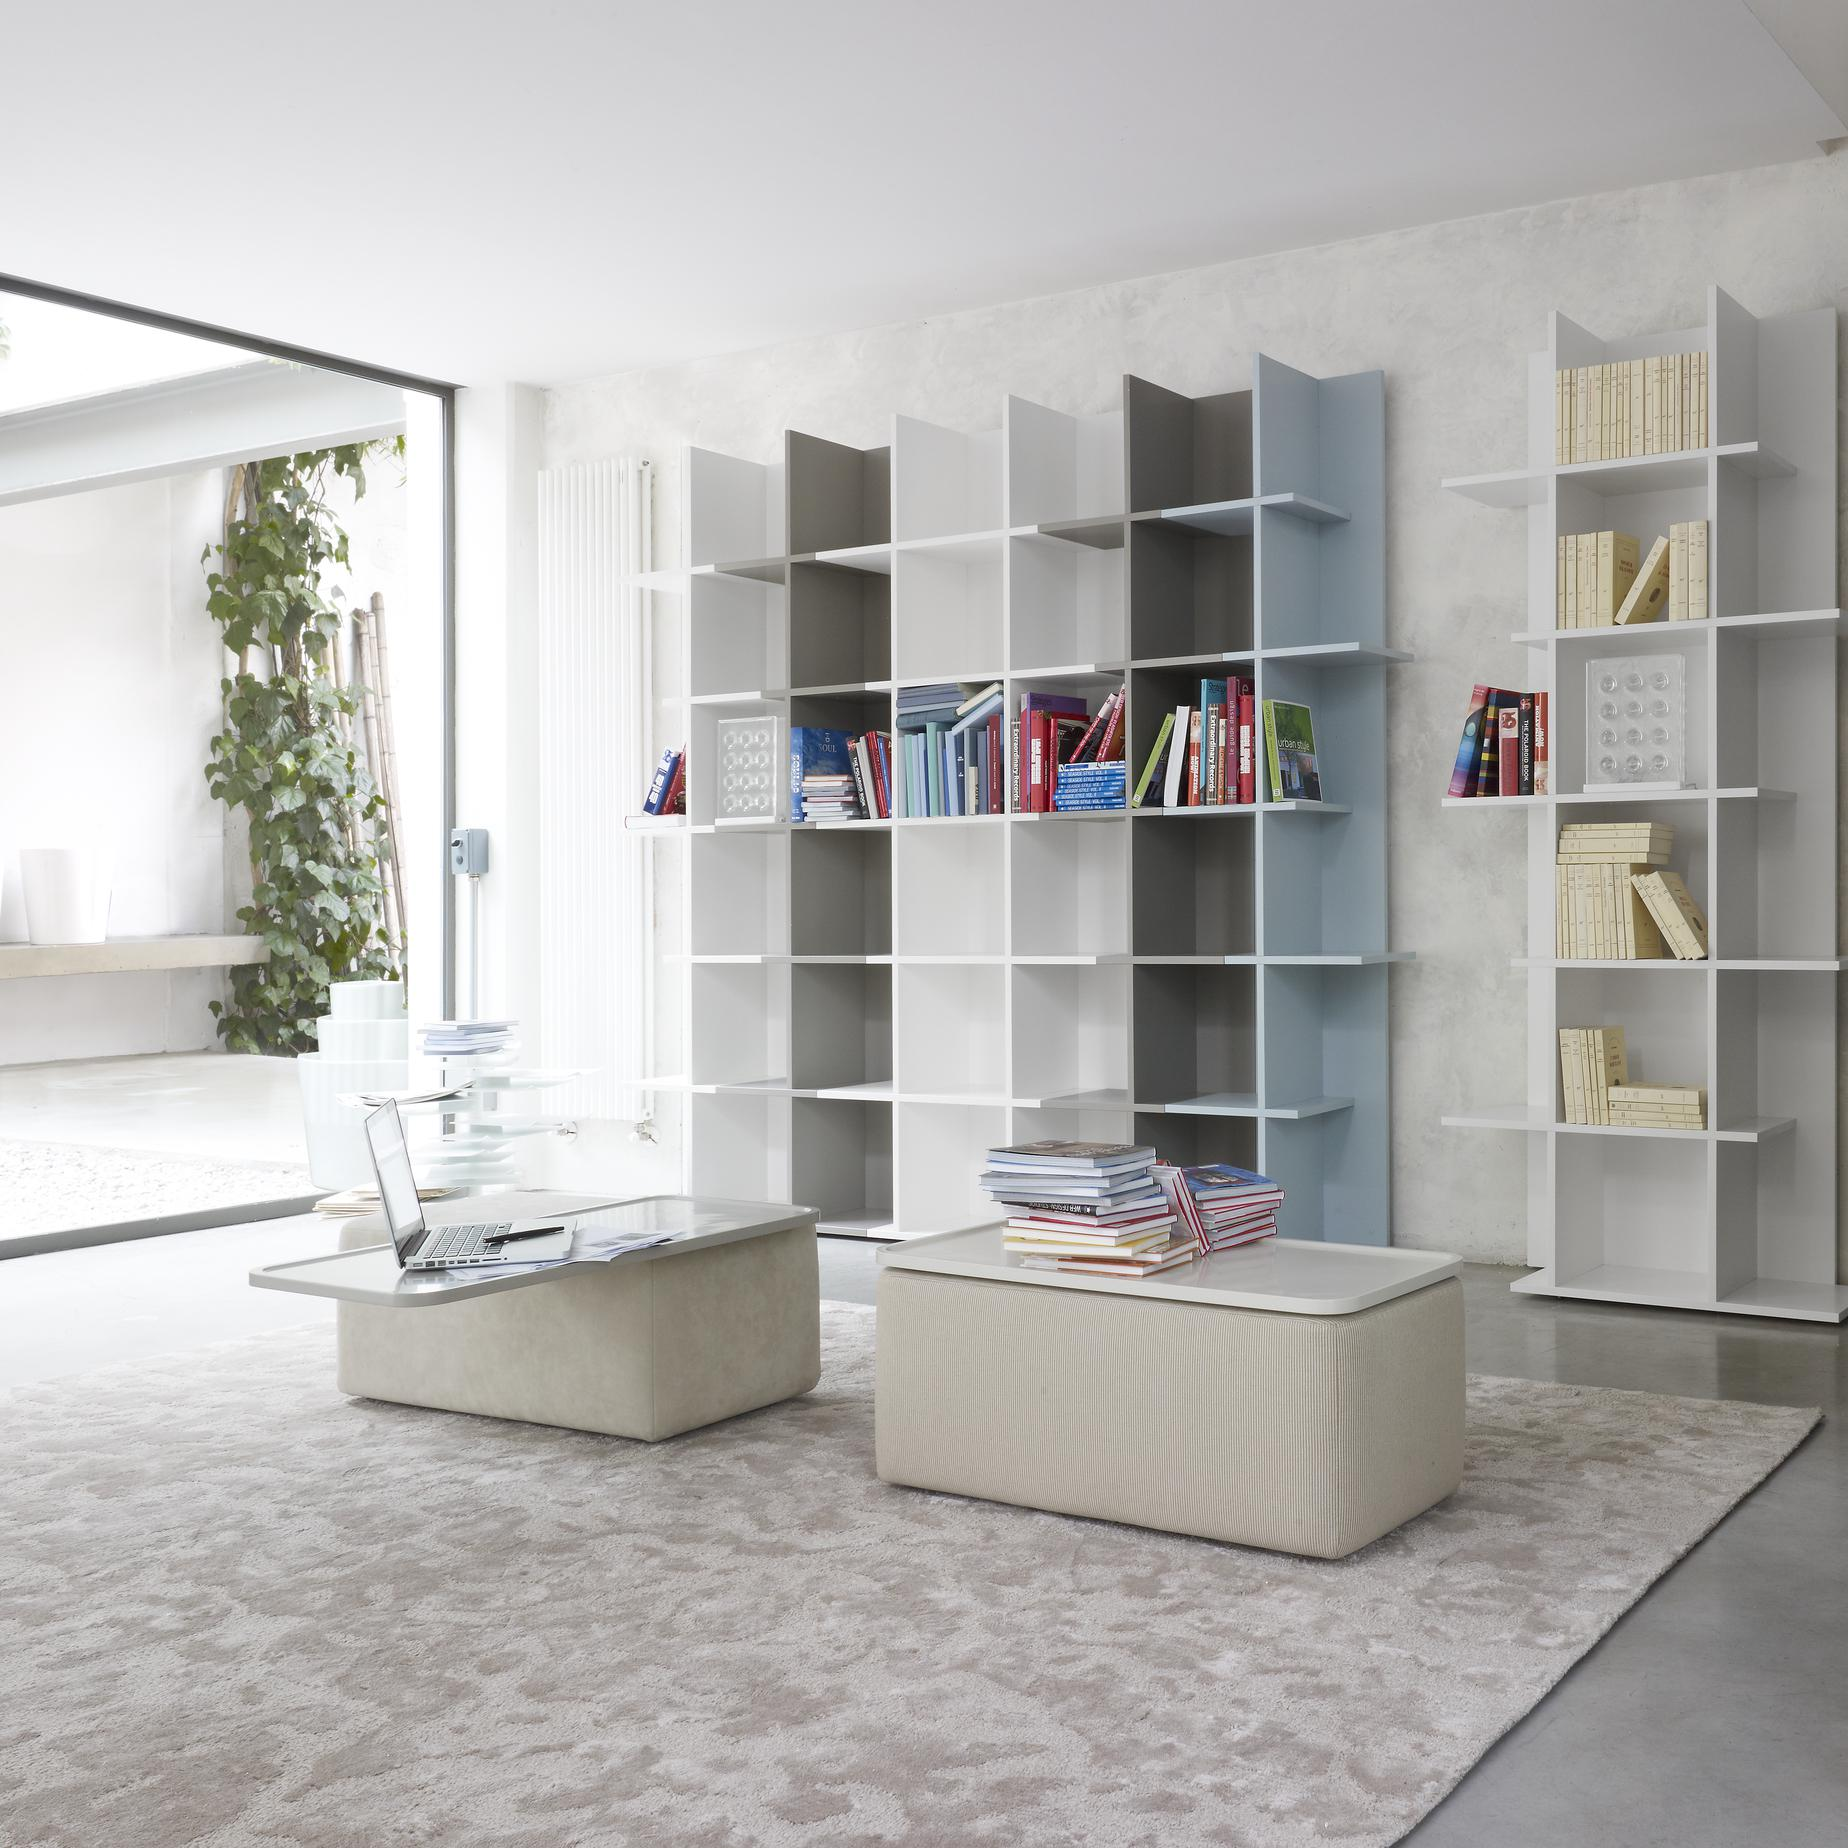 oka bookcases shelving from designer kazuko okamoto ligne roset official site. Black Bedroom Furniture Sets. Home Design Ideas